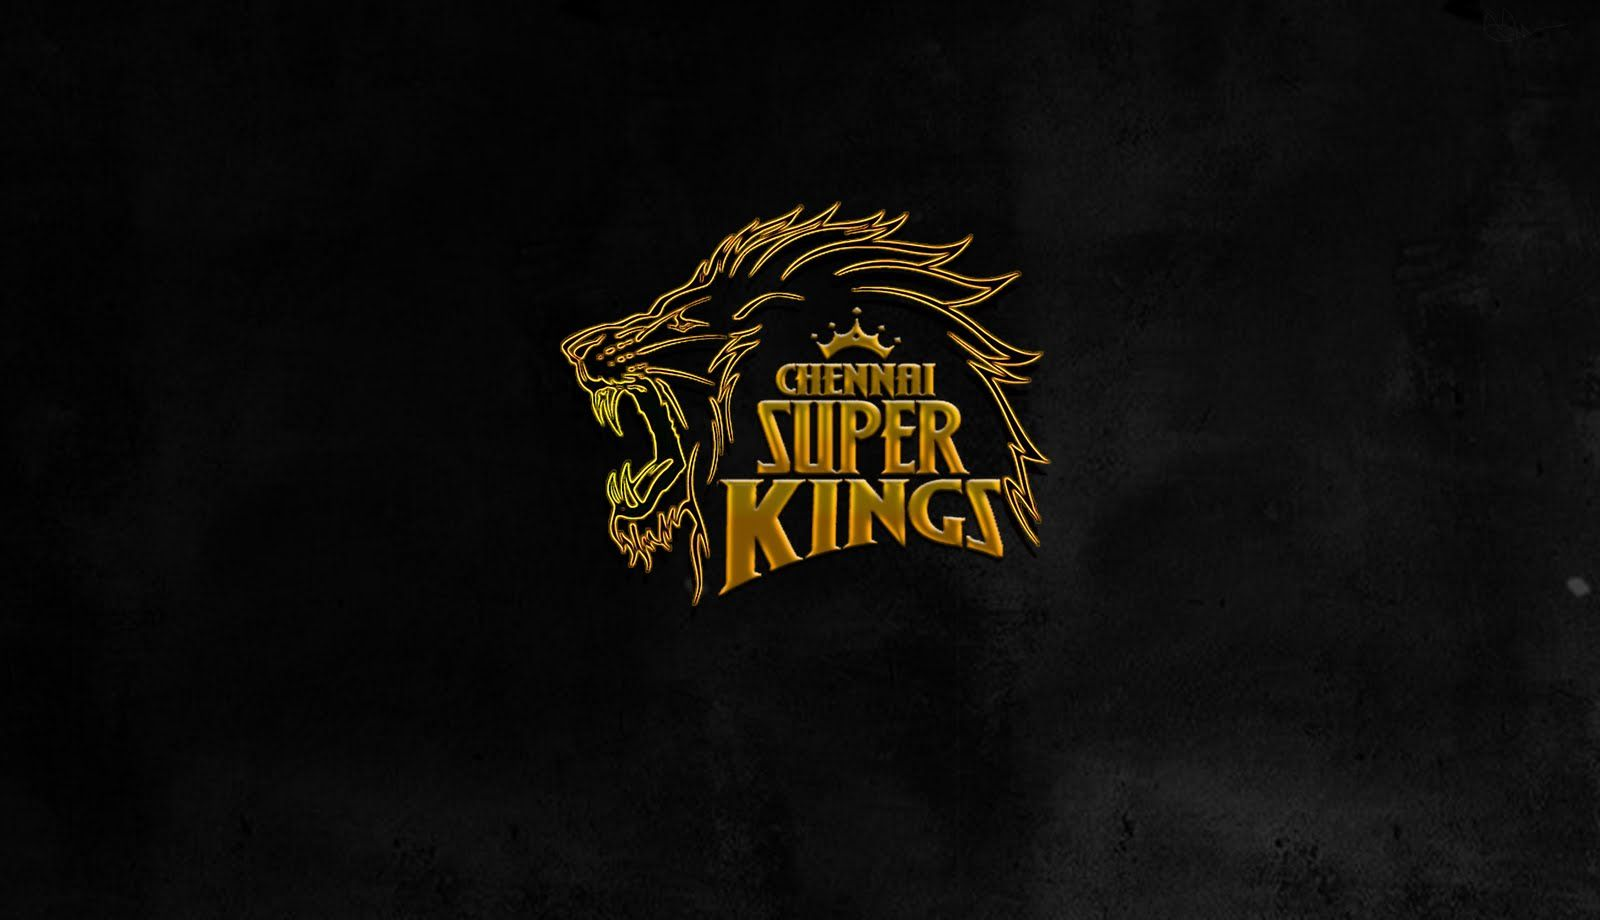 Pin By Liveurlifehere On Liveurlifehere Wallpaper Chennai Super Kings Ipl Dhoni Wallpapers